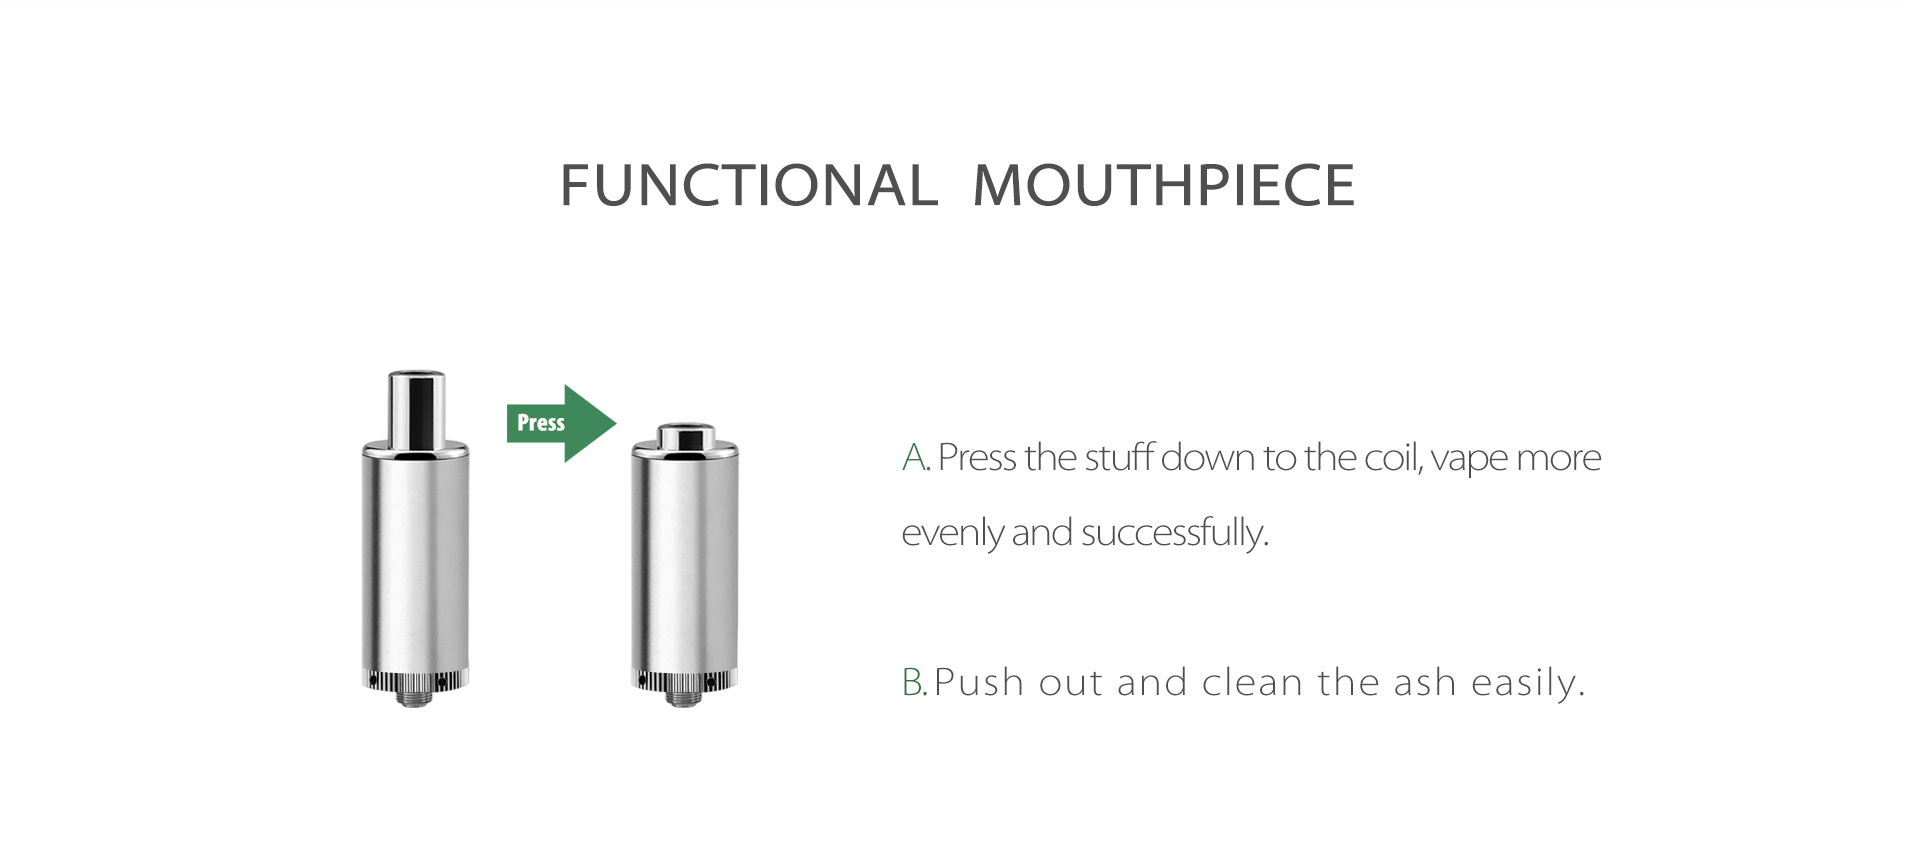 Yocan Evolve-D Plus vaporizer pen 2020 version features a multi-functional mouthpiece that can be used to rotate the material inside closer to the heating element or to quickly remove